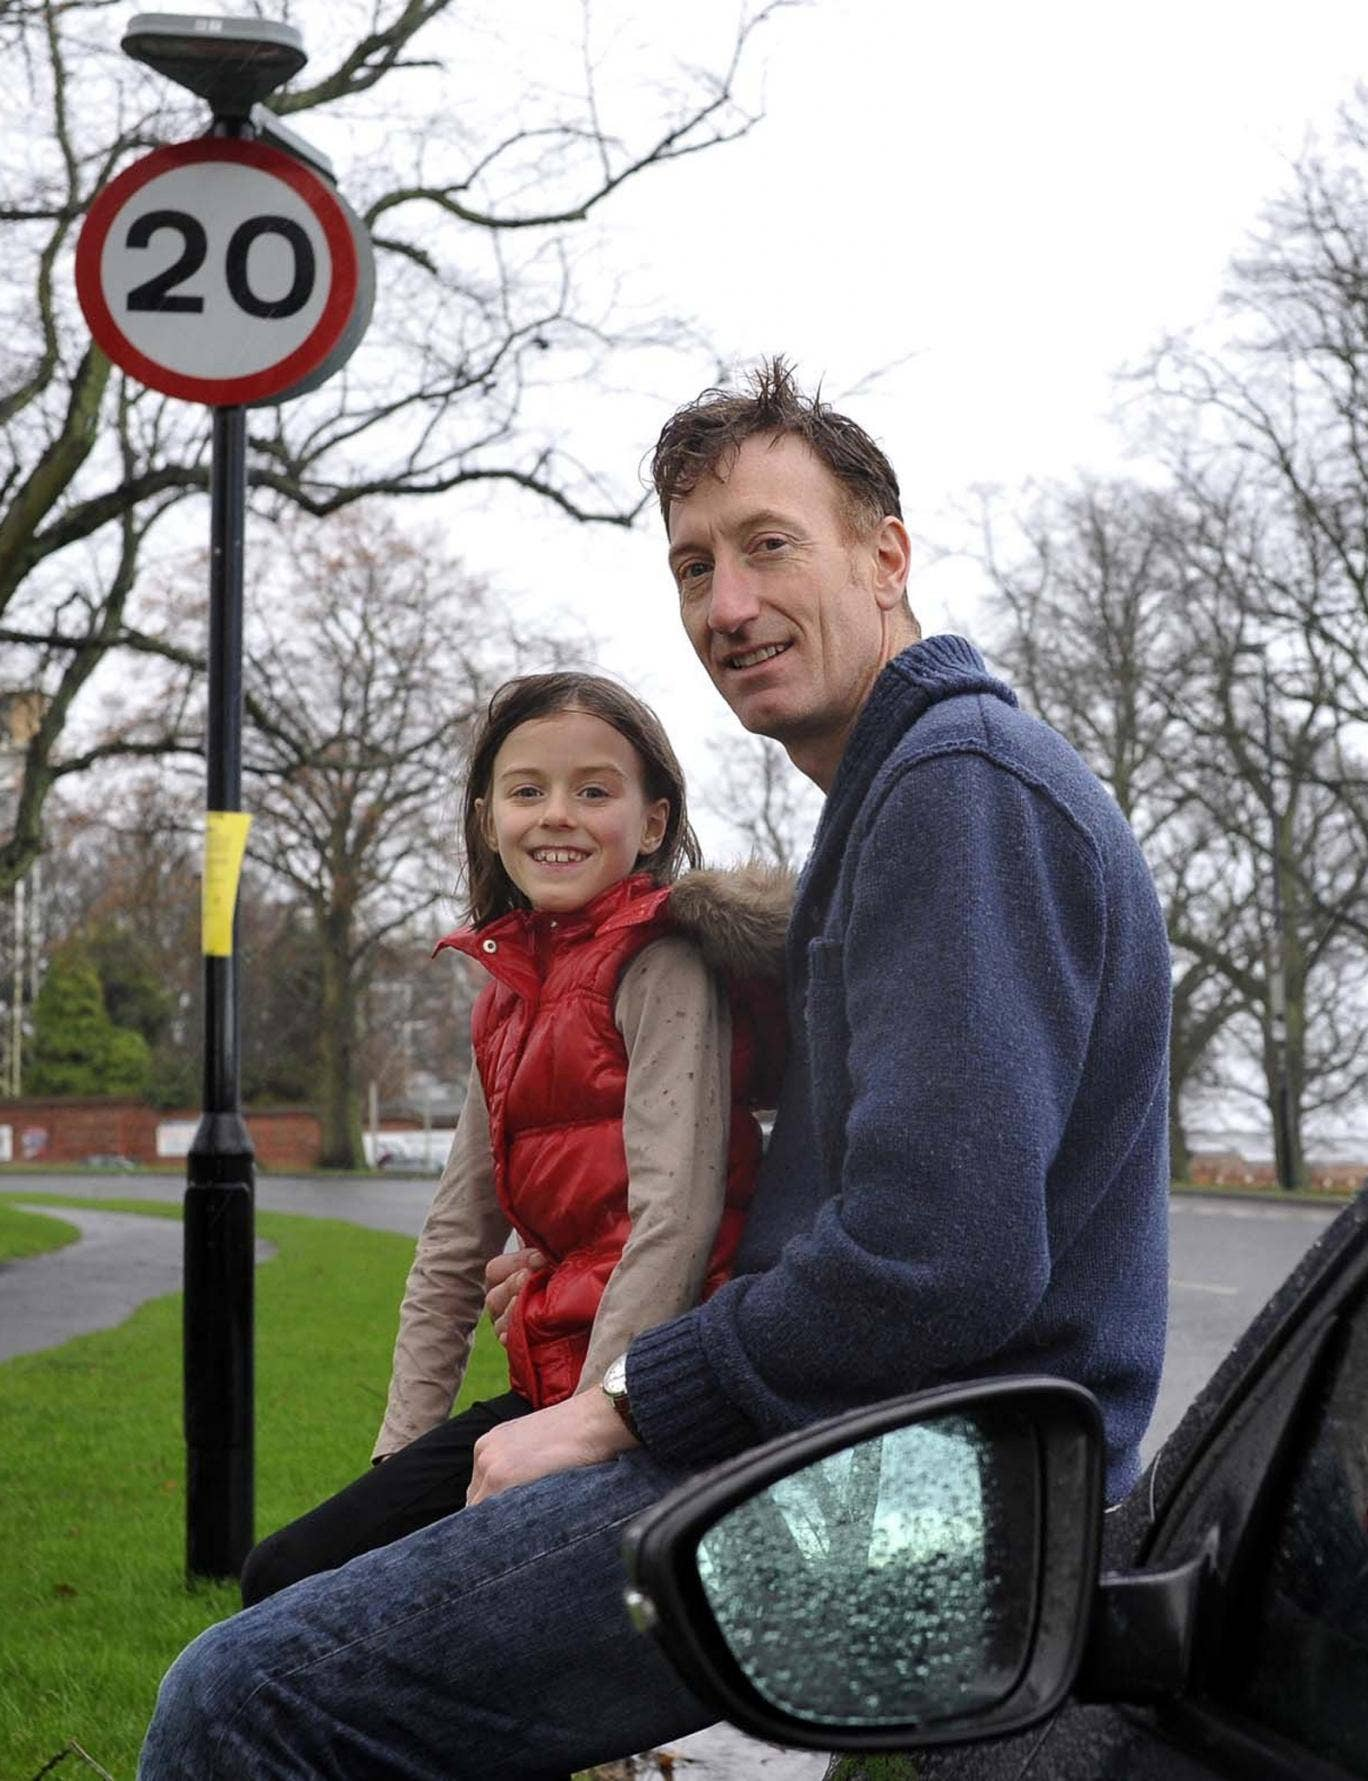 Jonathan Brown with his daughter Olivia near their home in York